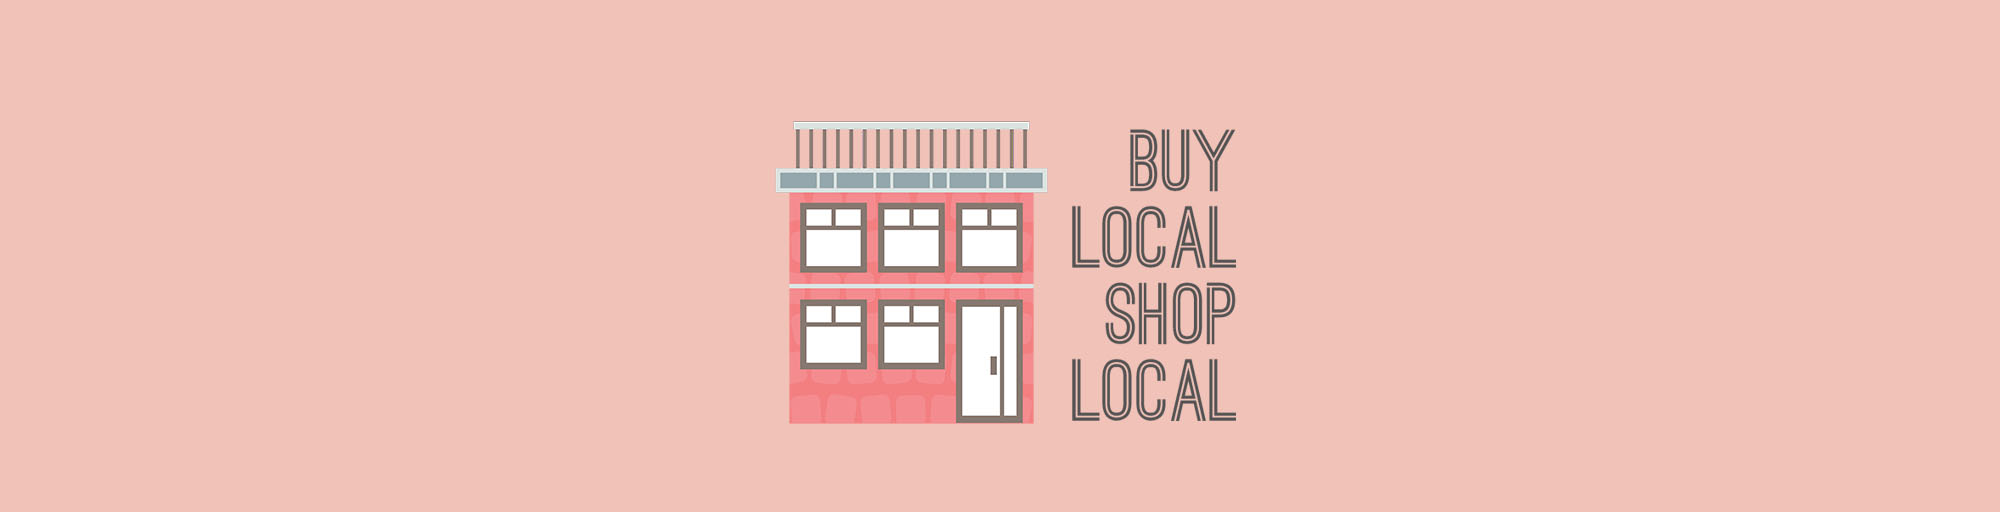 buy local shop local janome dealer